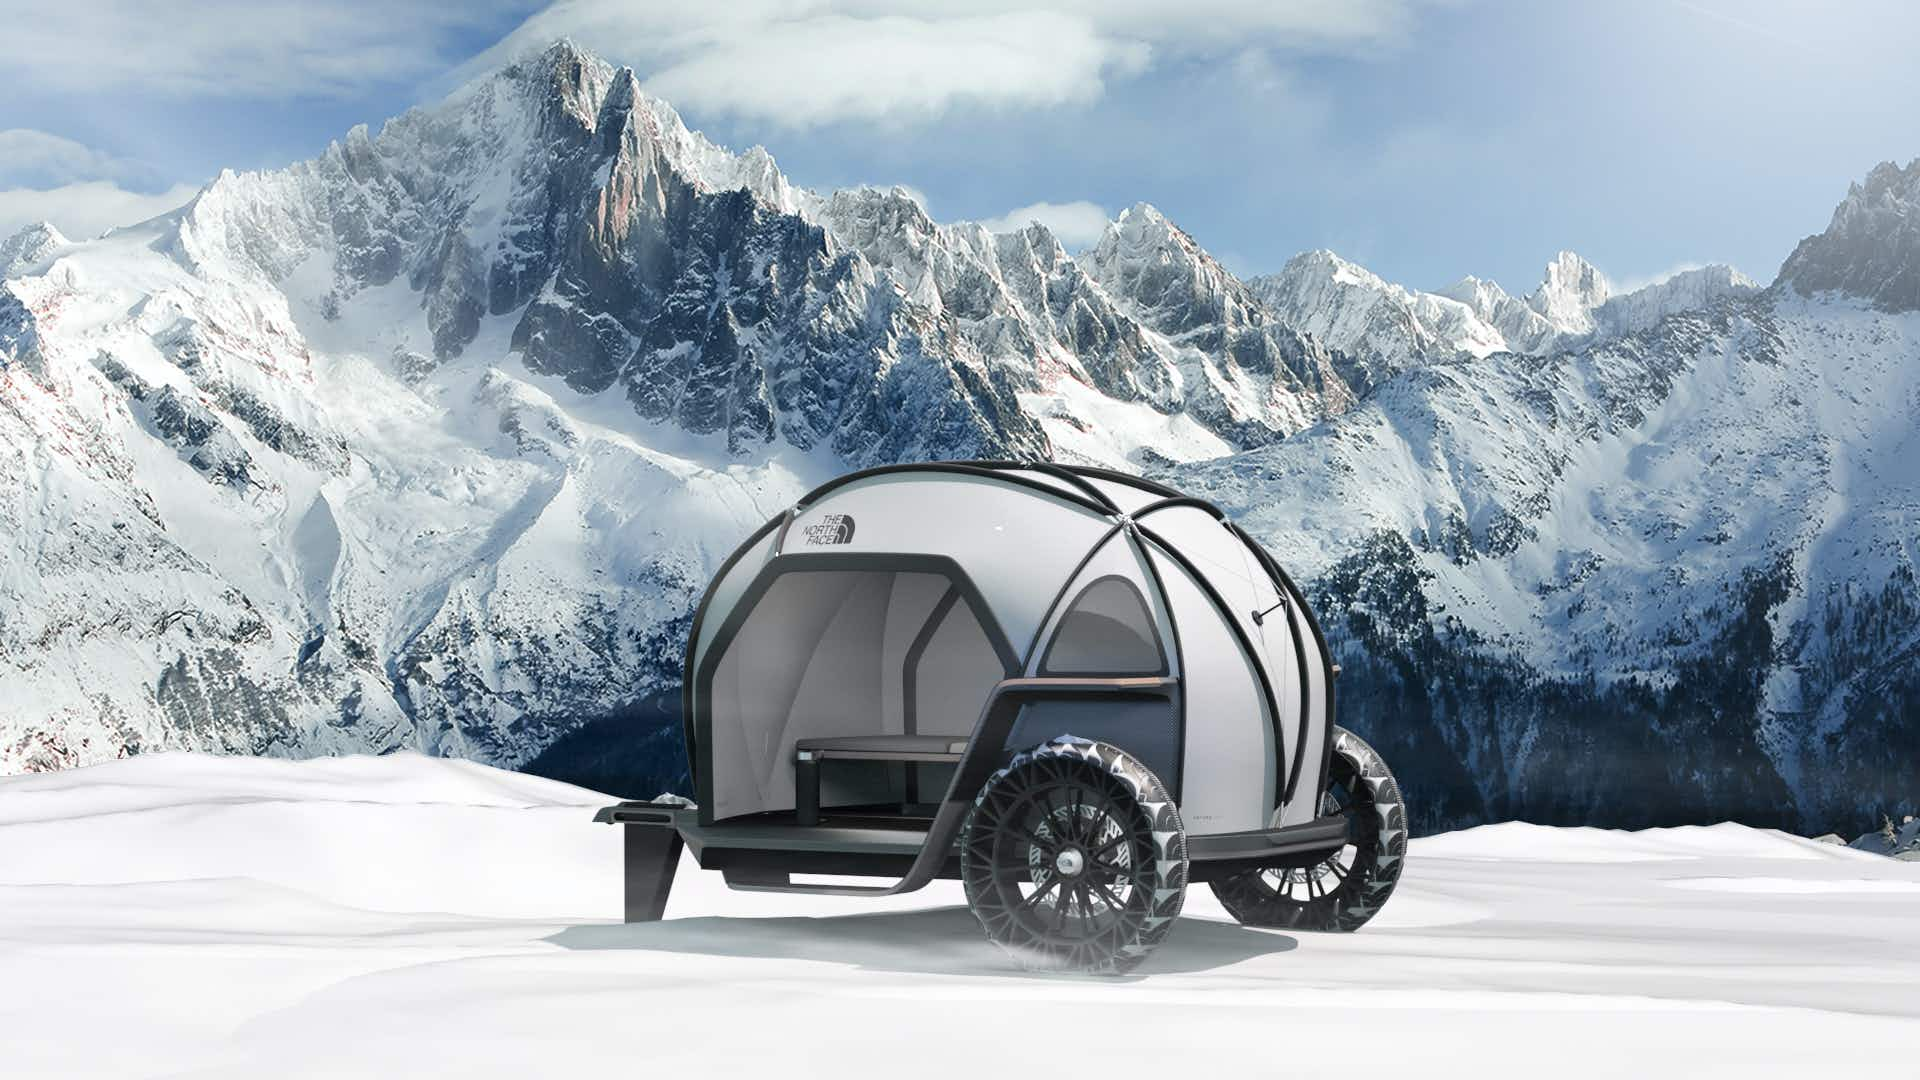 The new camper specially designed to withstand extreme elements